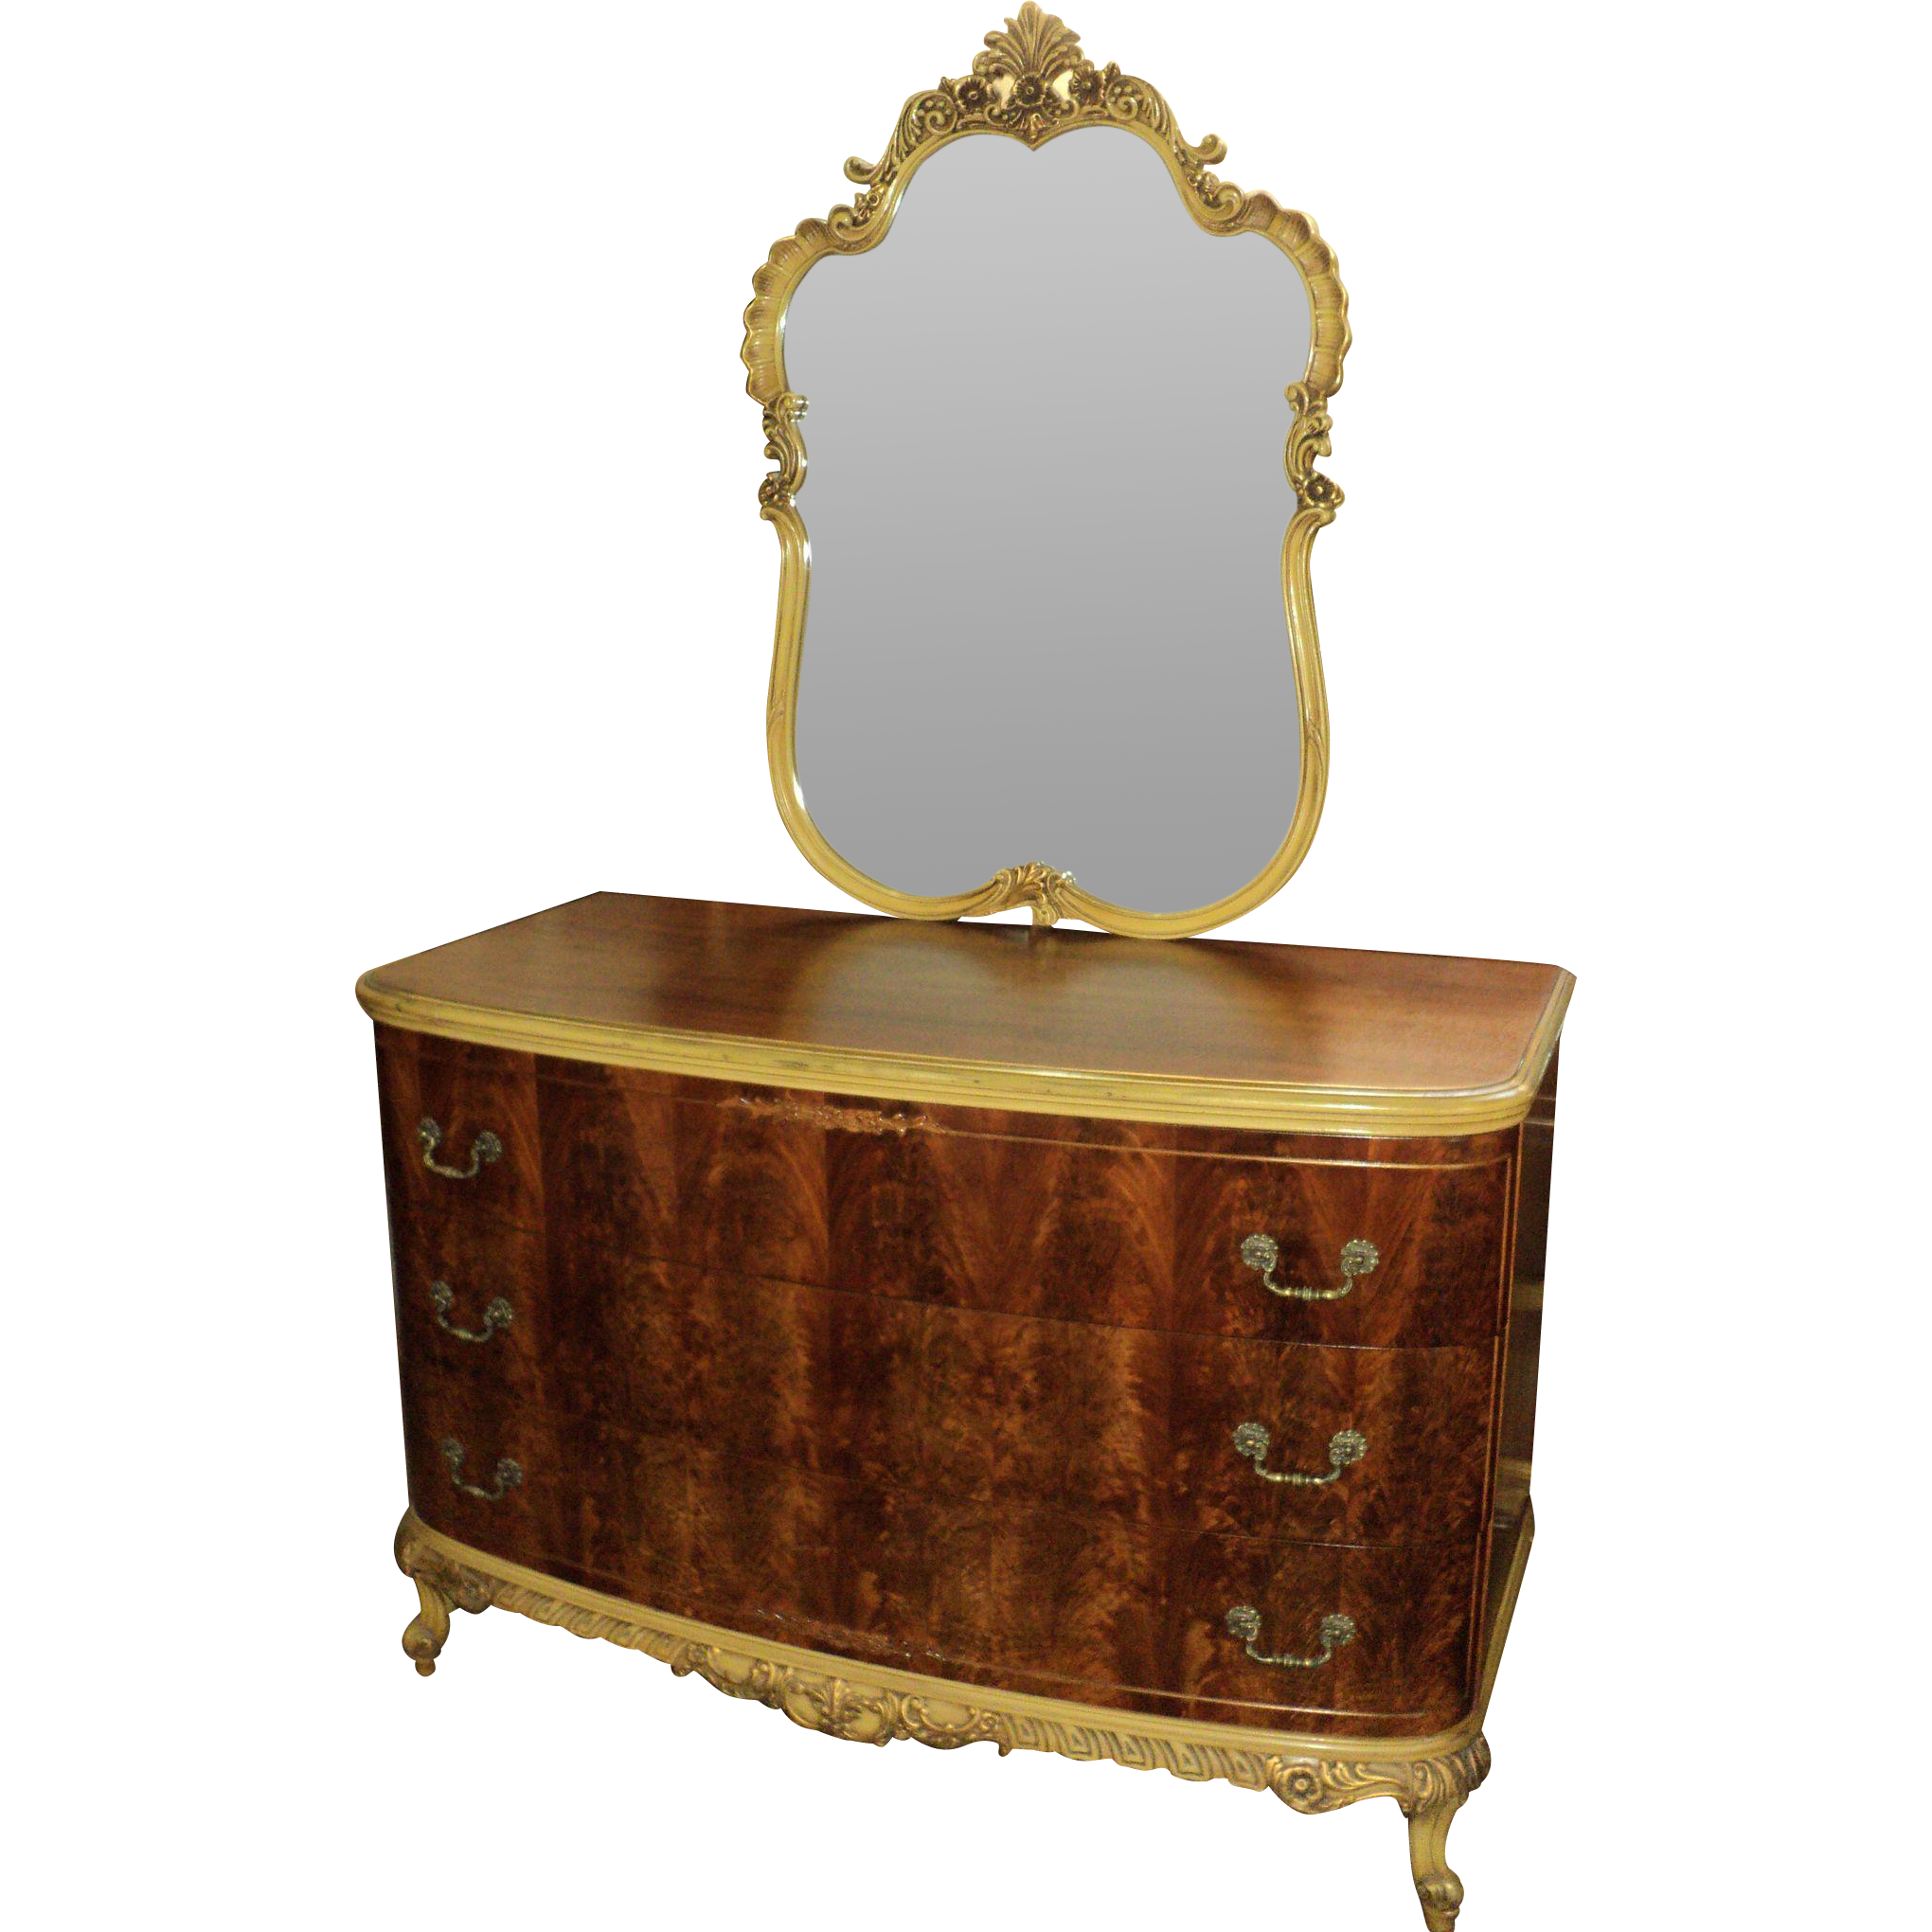 French Provincial Dresser w, Mirror and Bed, circa 1920's-30's